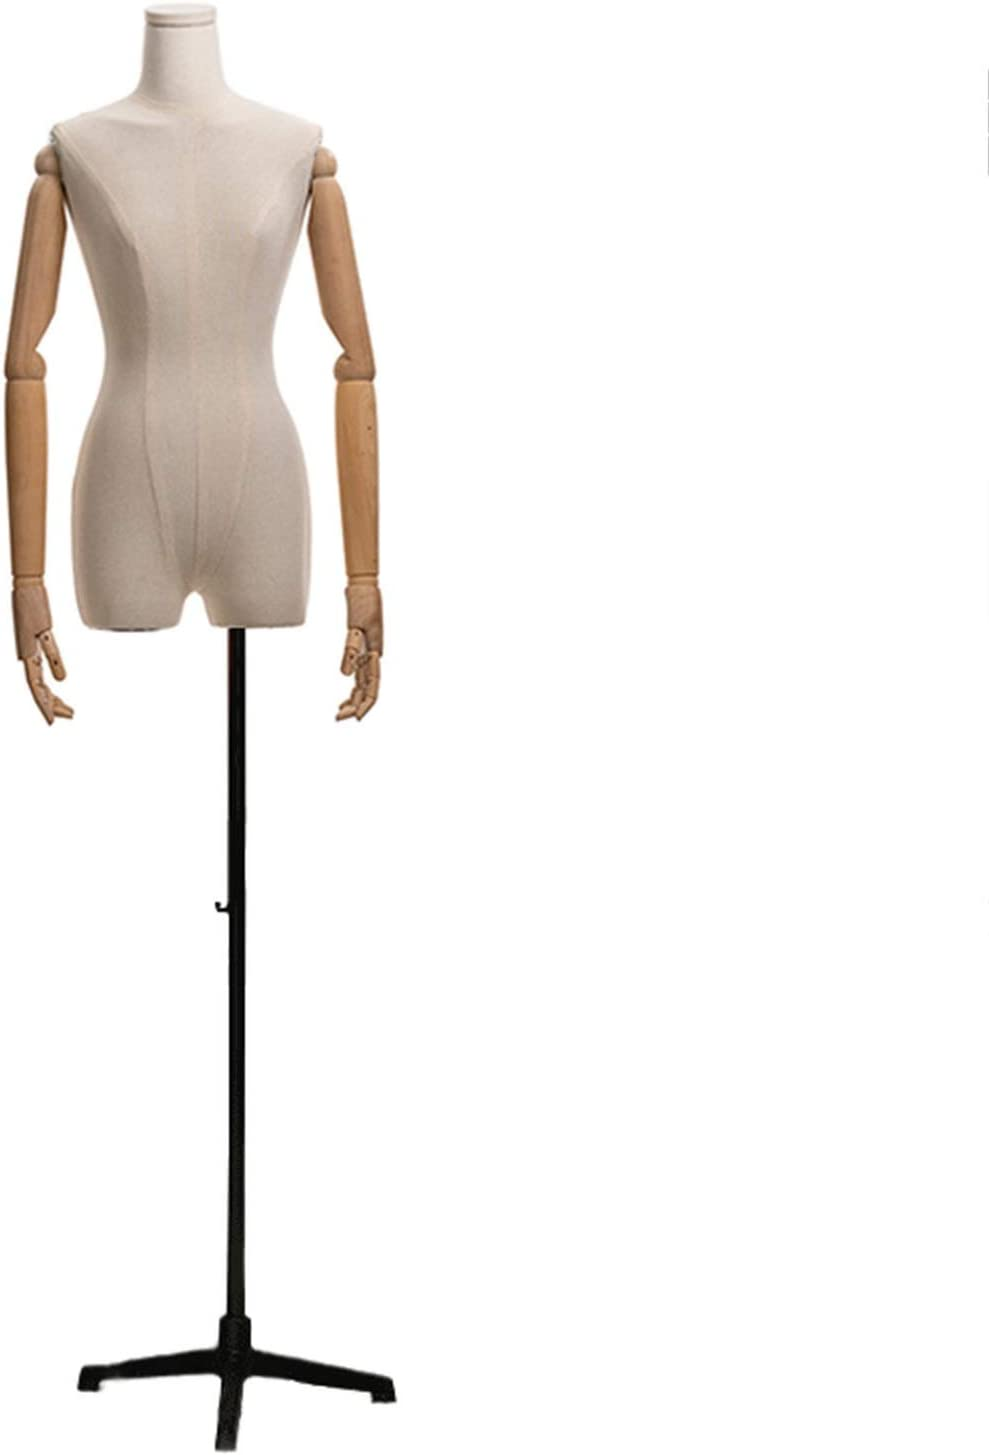 CHAXIA-Mannequins Female price Torso Body Model Dress Display S 2021 new Props